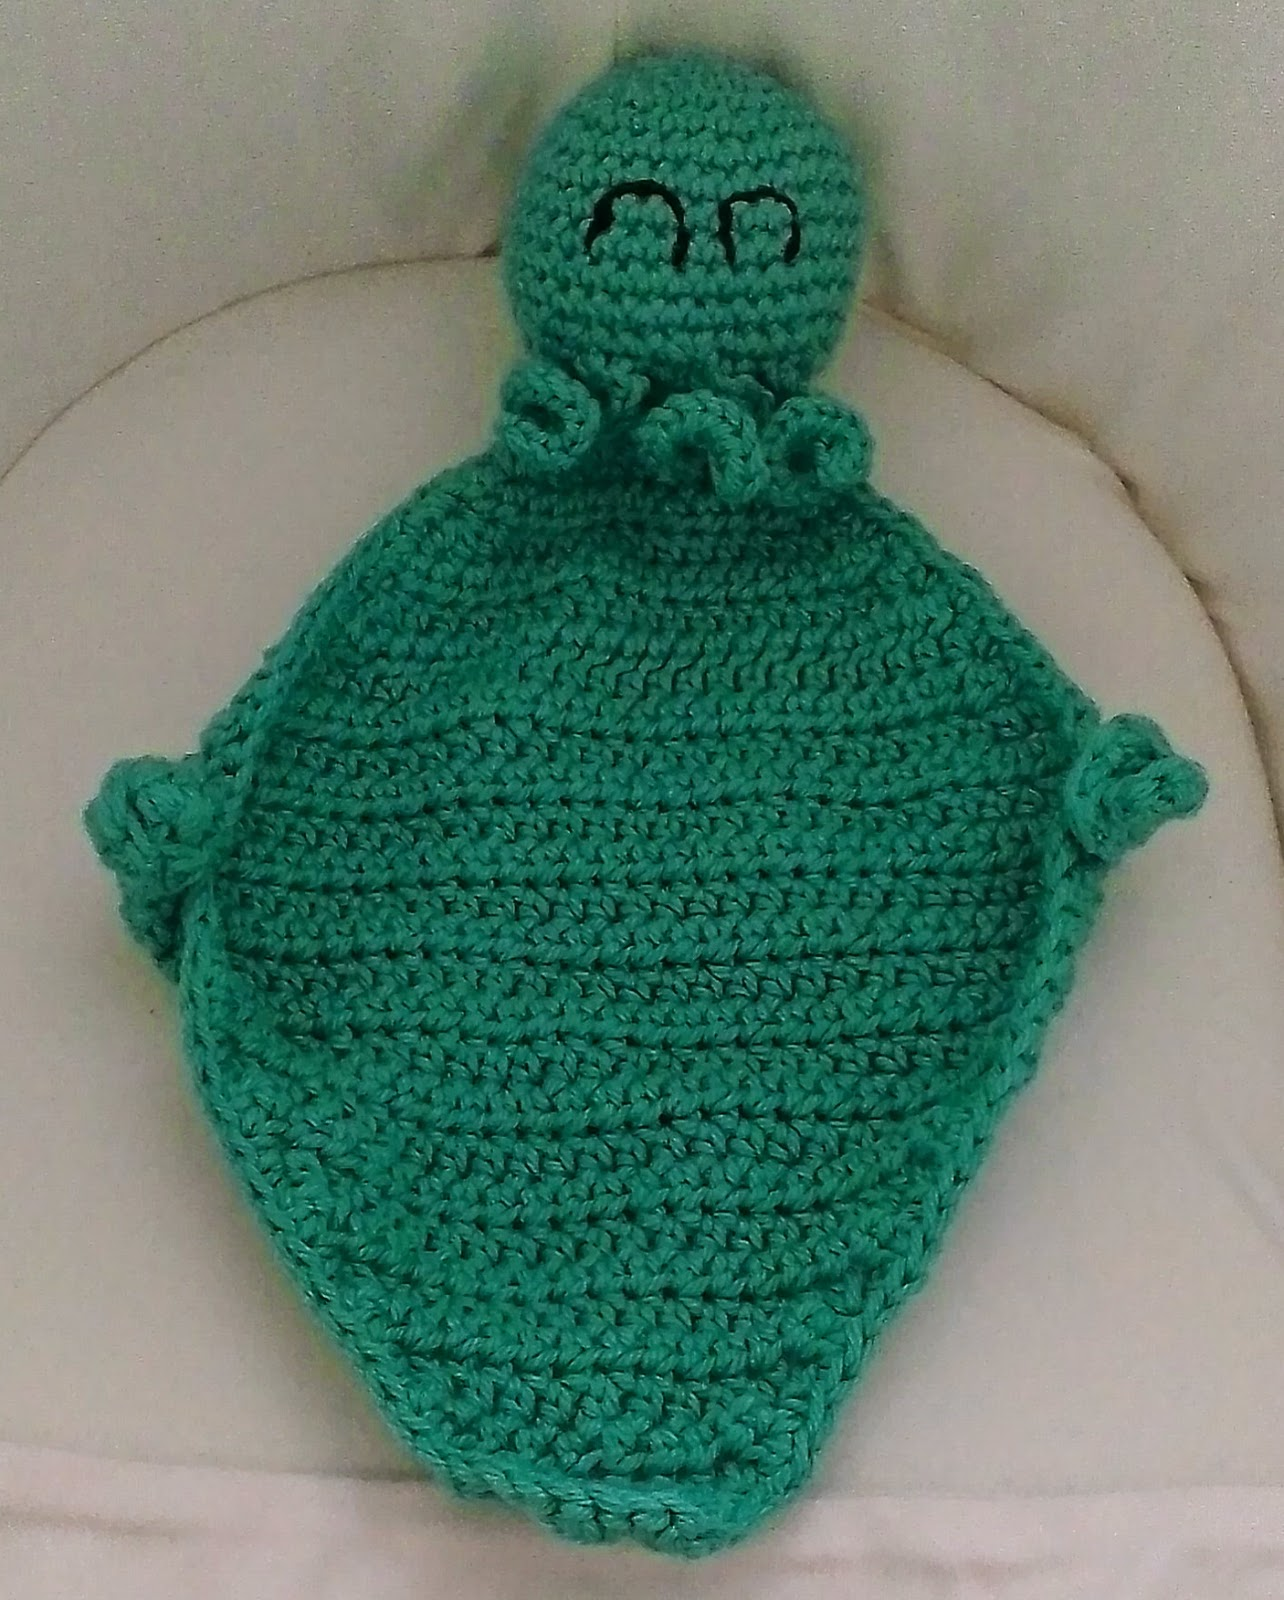 Crochet cthulhu beard hat chance of raine sleepy cthulhu waiting for the baby to arrive bankloansurffo Choice Image